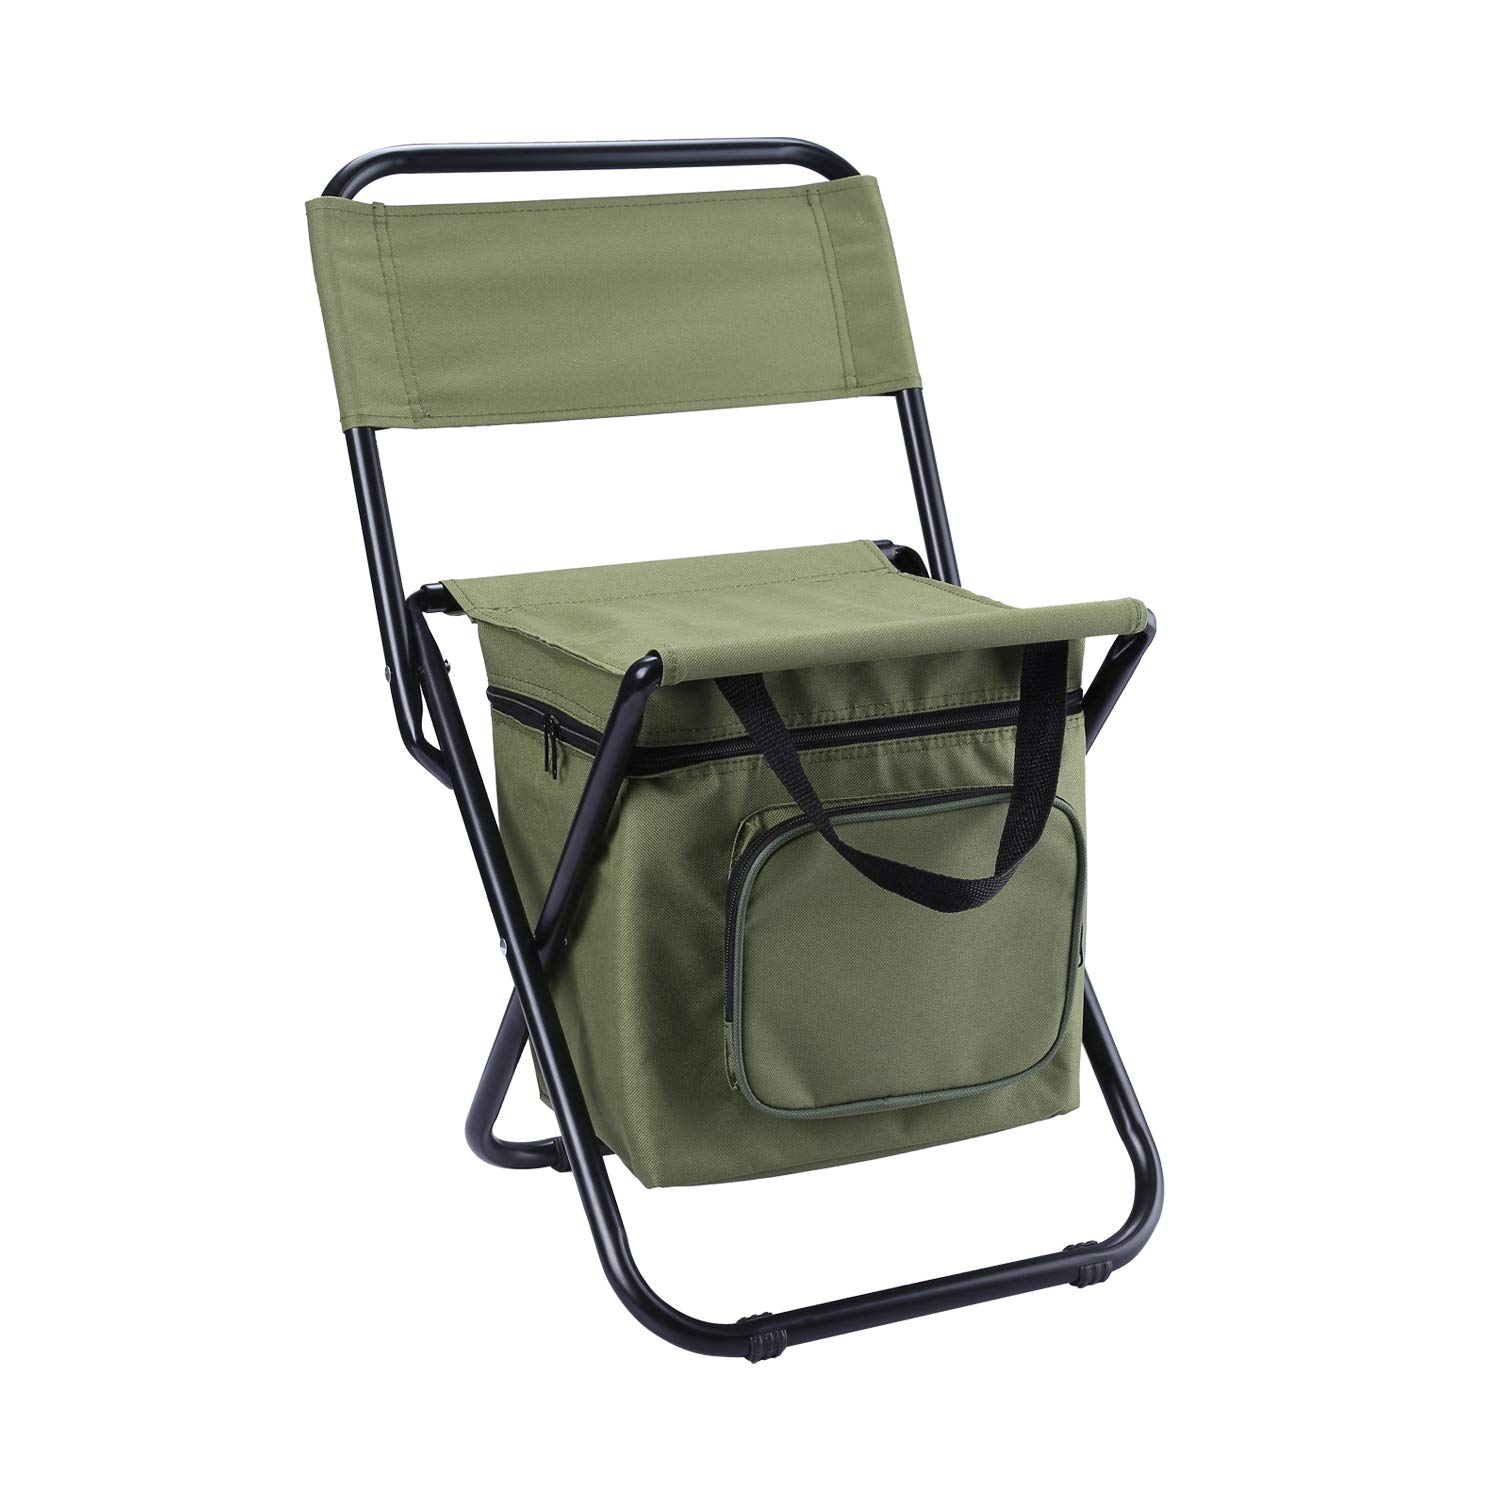 LEADALLWAY Foldable Camping Chair with Cooler Bag Compact Fishing Stool